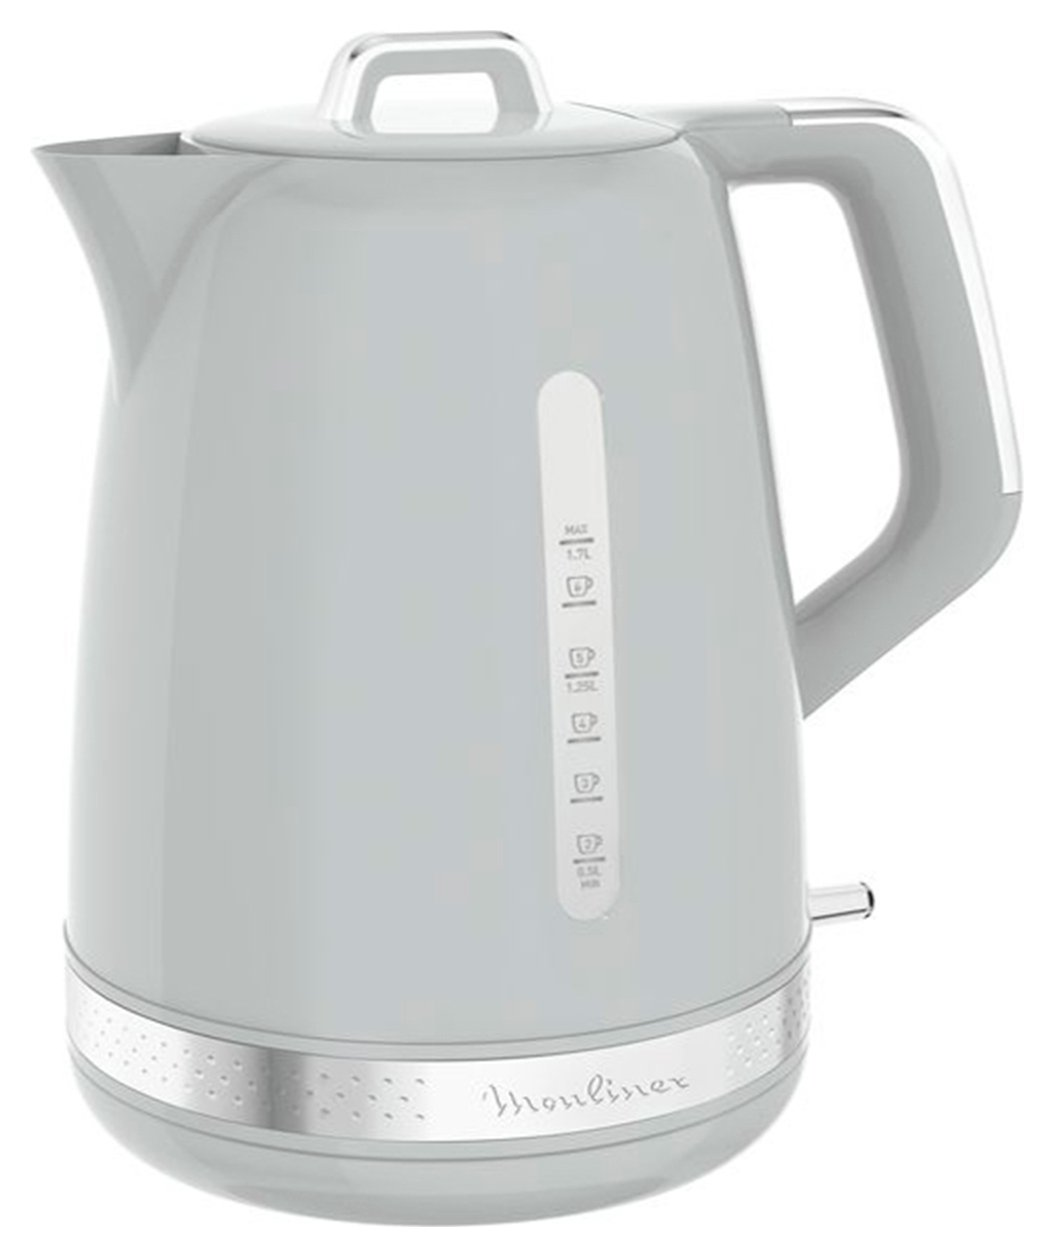 Moulinex 7211003095 Kettle - Pepper